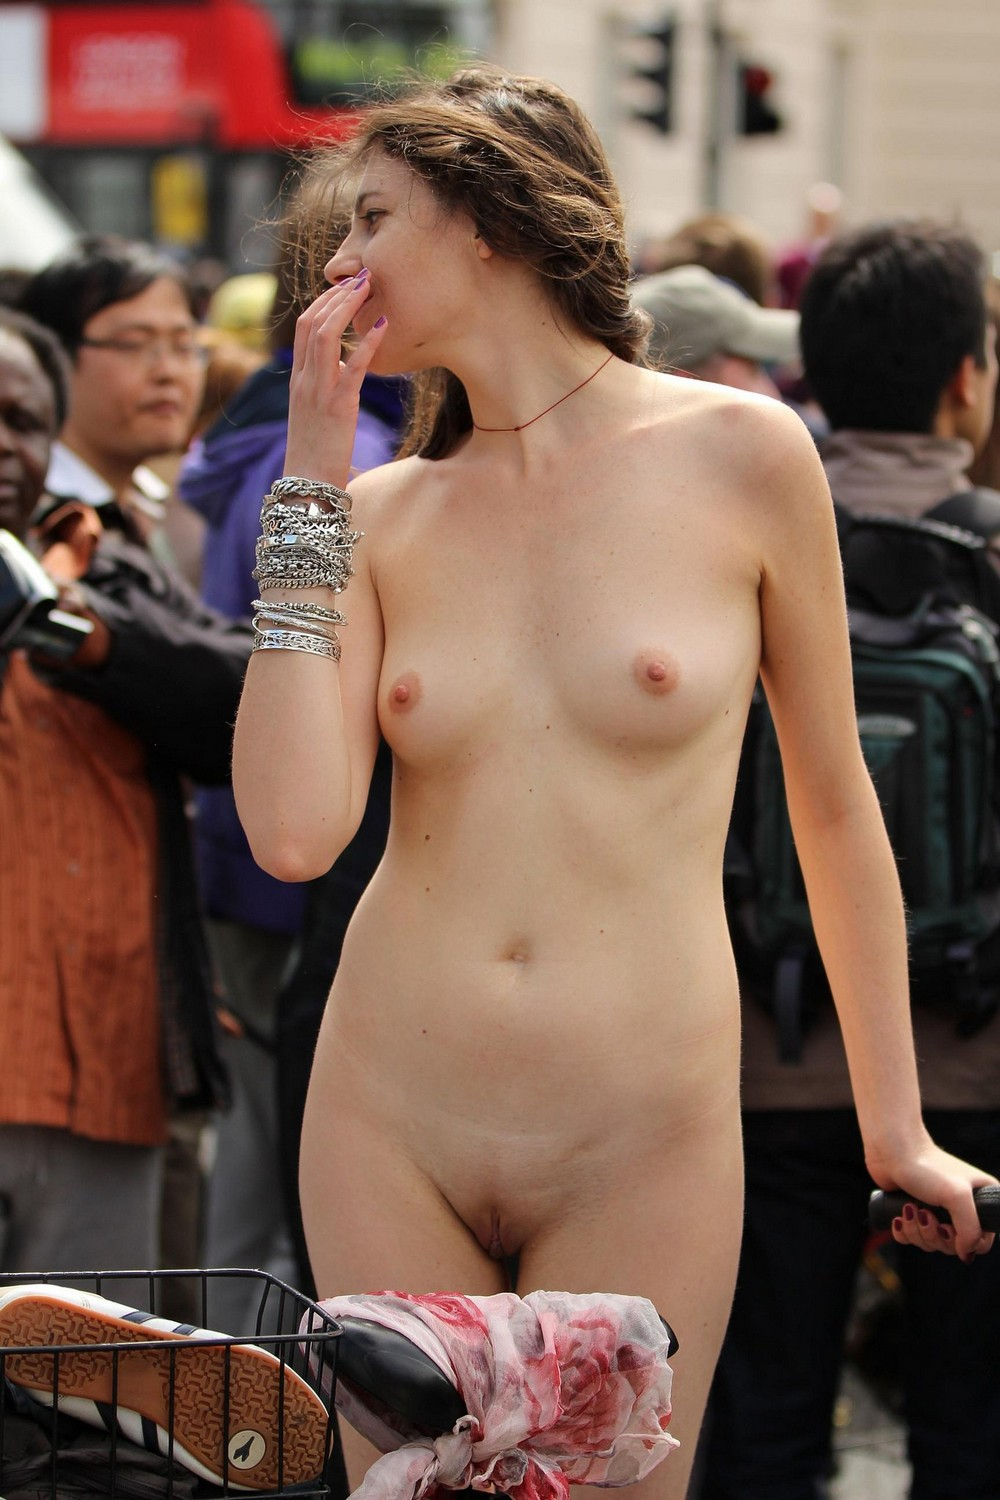 naked-exposed-women-free-women-ass-pics